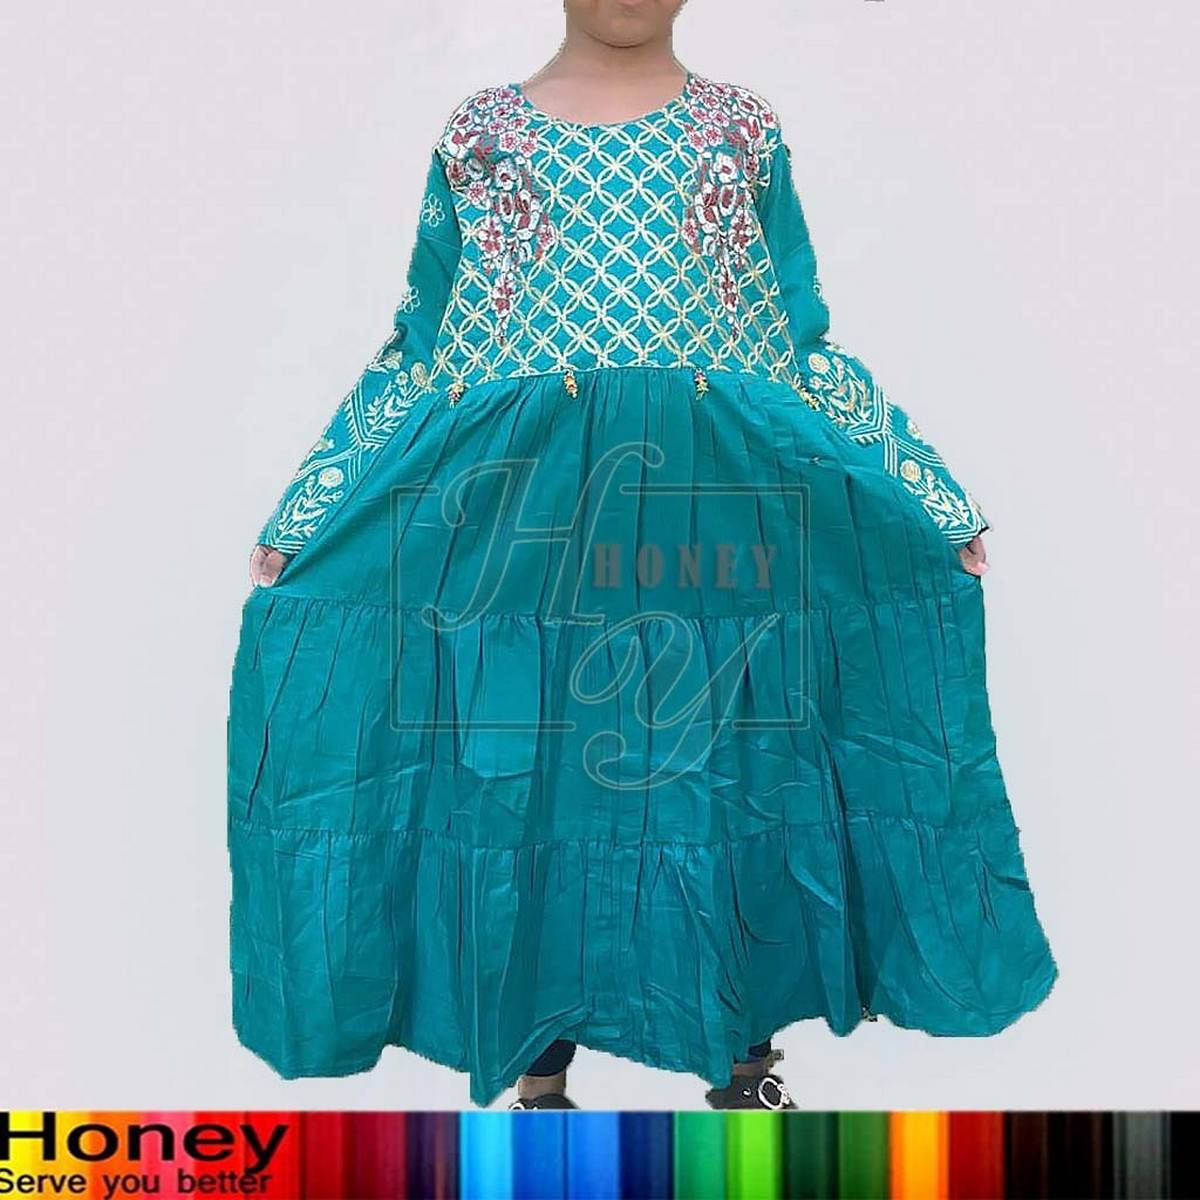 Fancy Embroidery Full Sleeves Kids Kurti, Type Frock, Maxi, Top, Shirt, New Collection 2021, Party wear Good stitched).